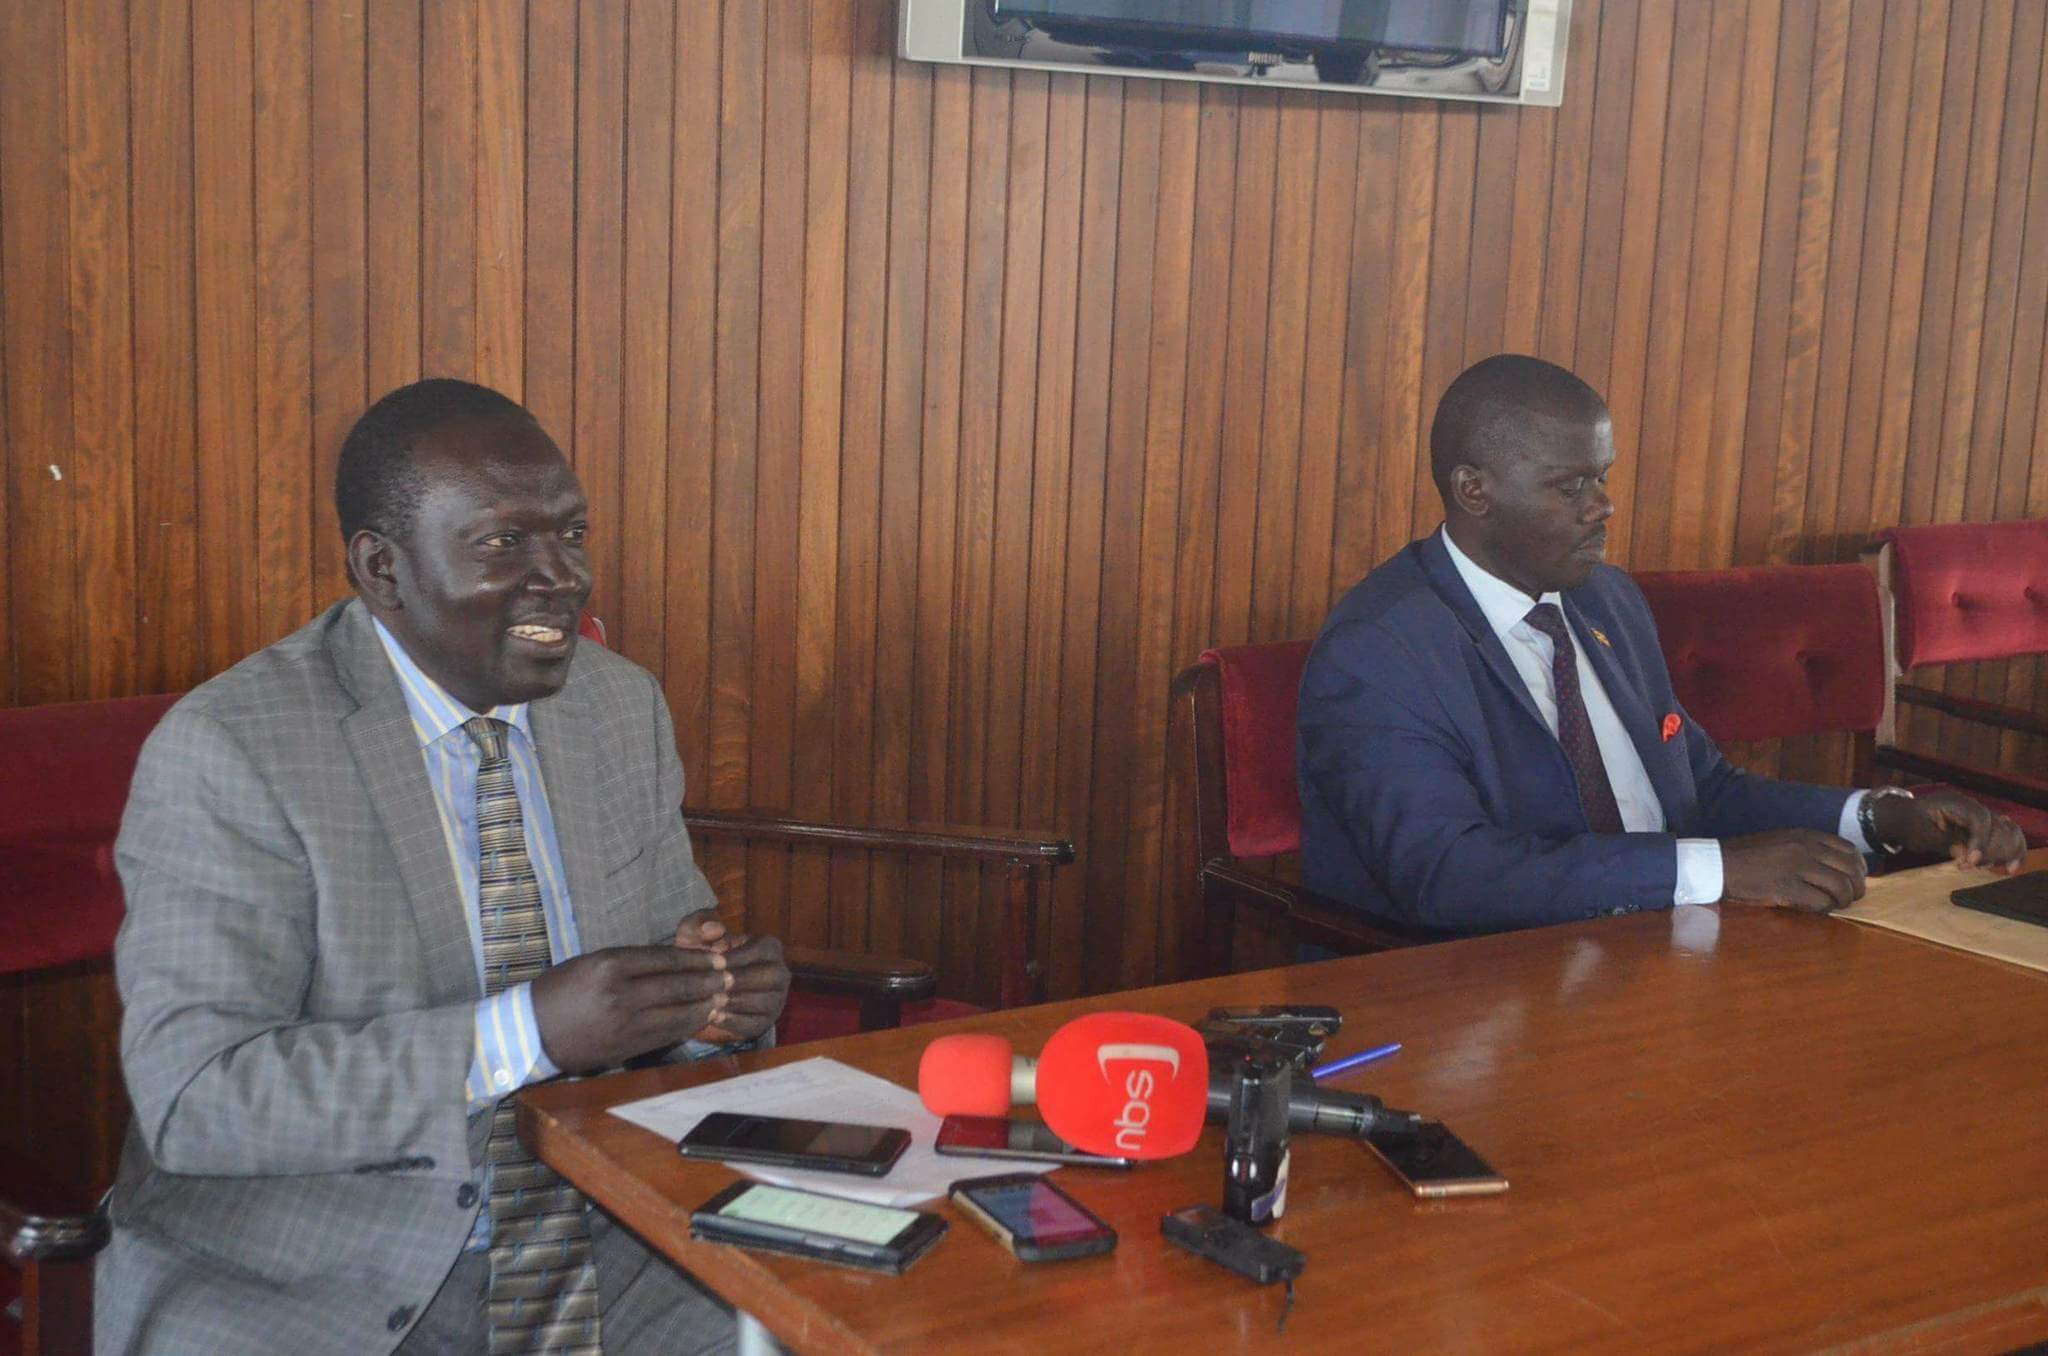 MPs Wmabede and Mugume address journalists in the Members'  Lounge at Parliament on Wednesday.